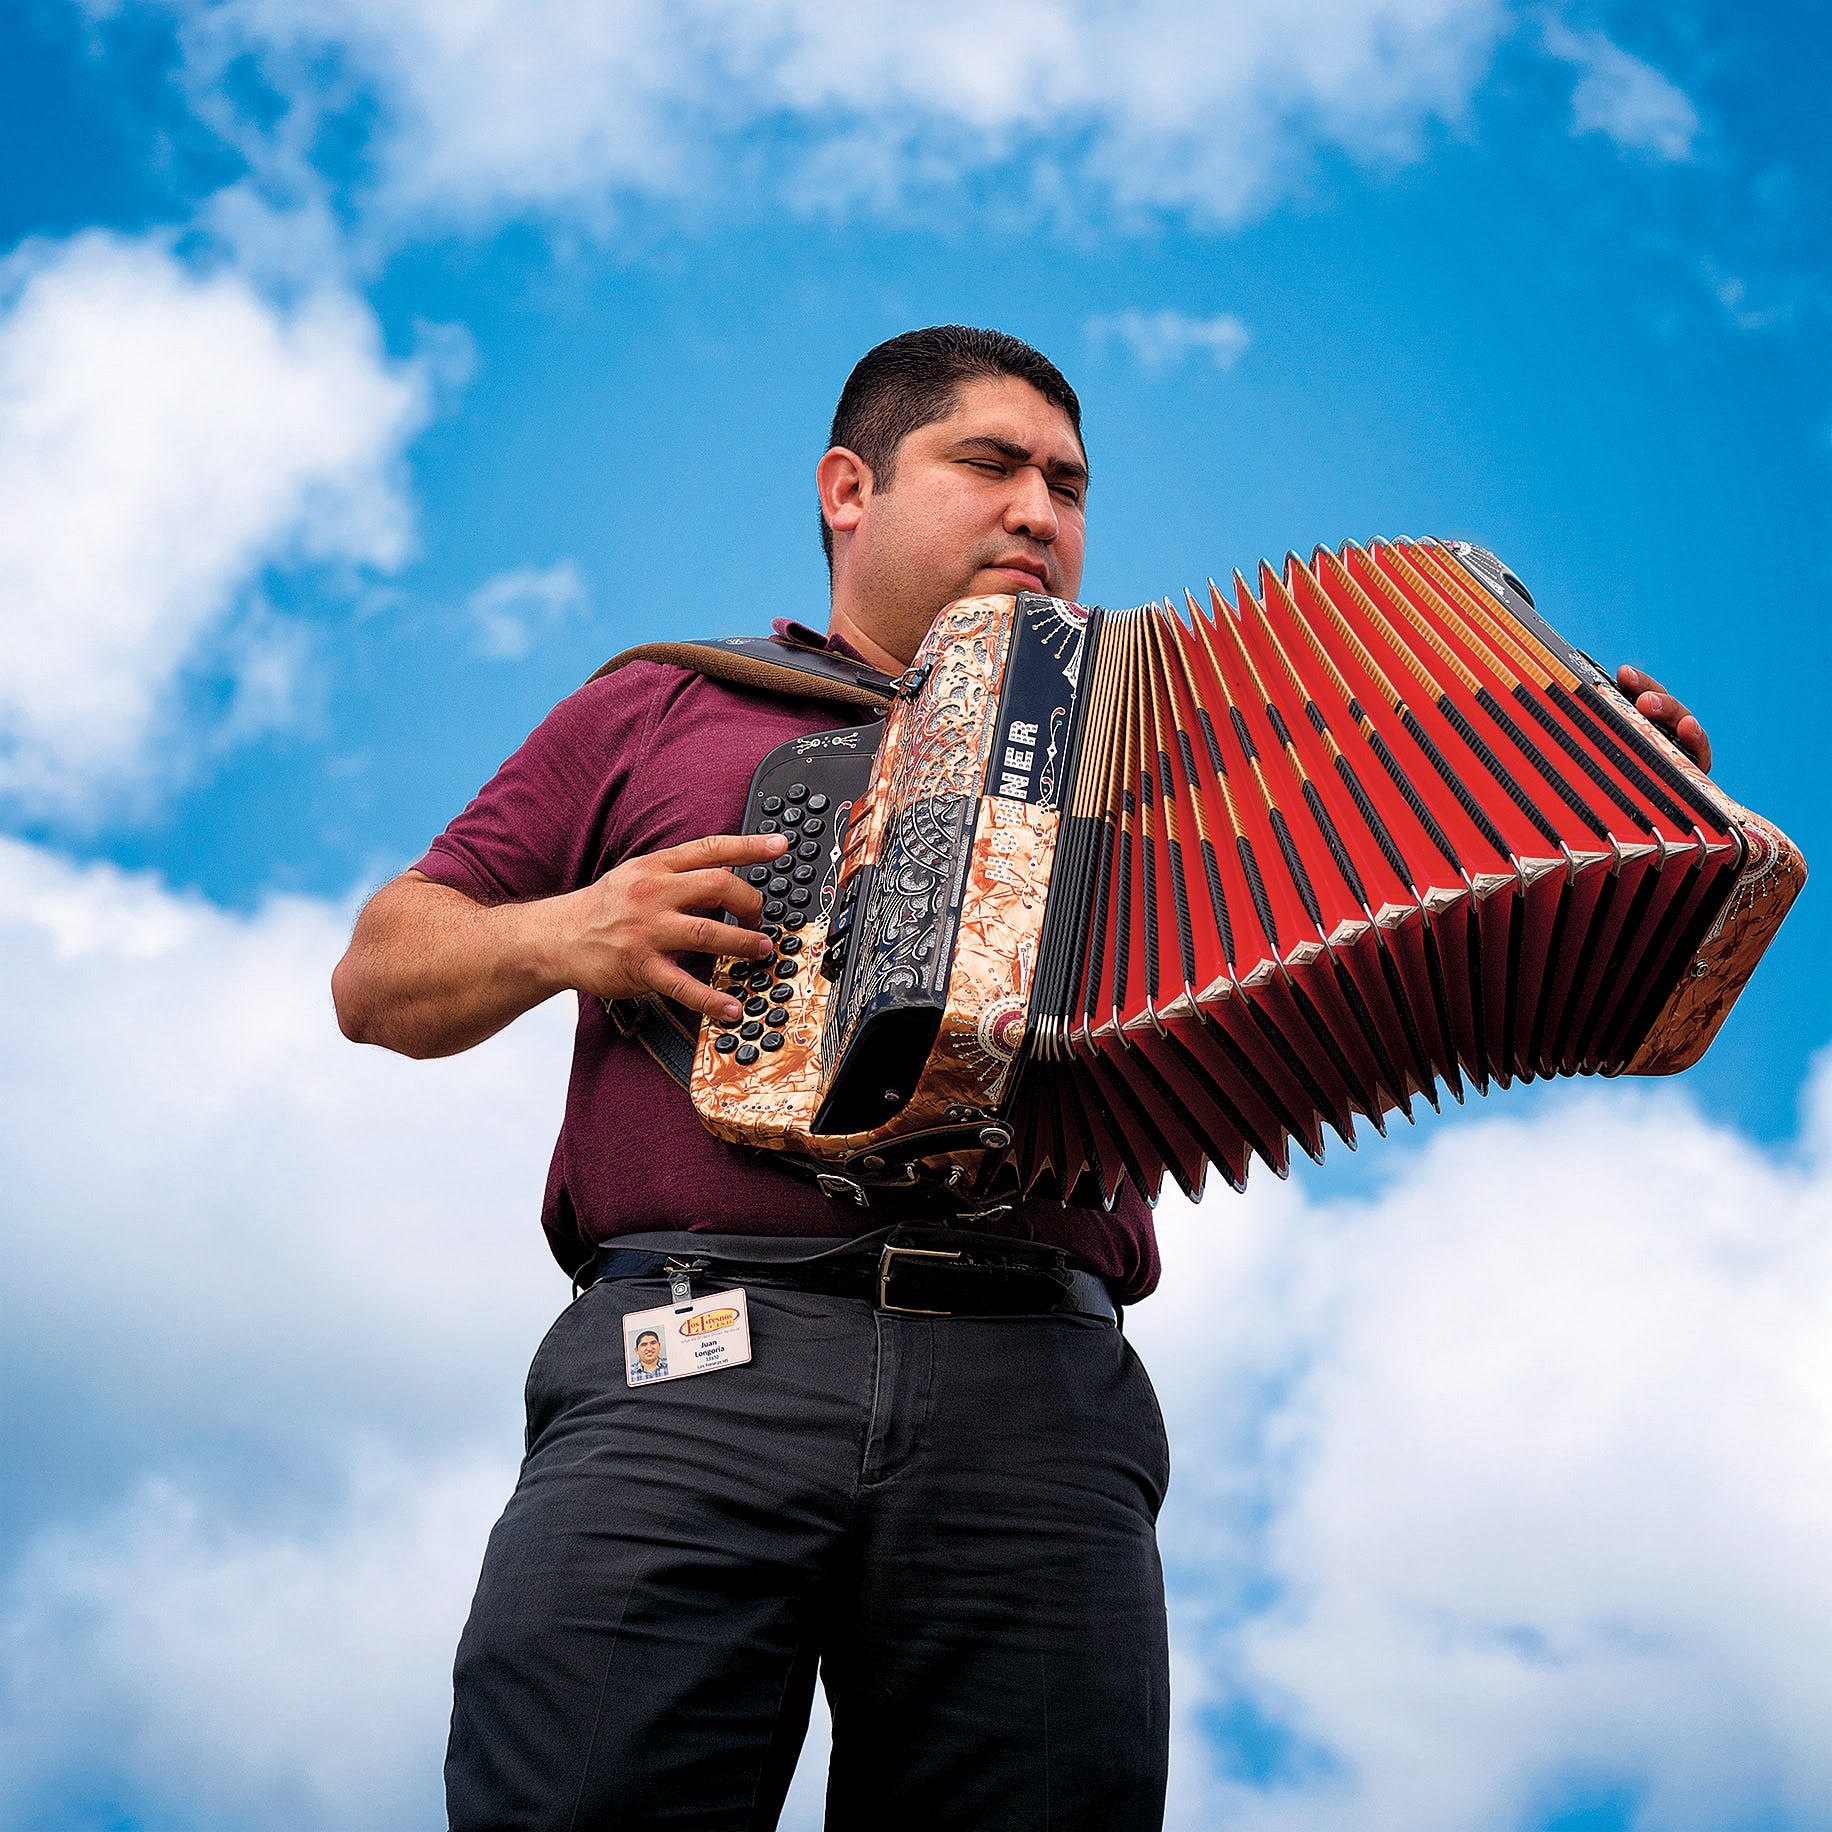 Juan Longoria Jr., is founder of the Los Fresnos High School Conjunto program